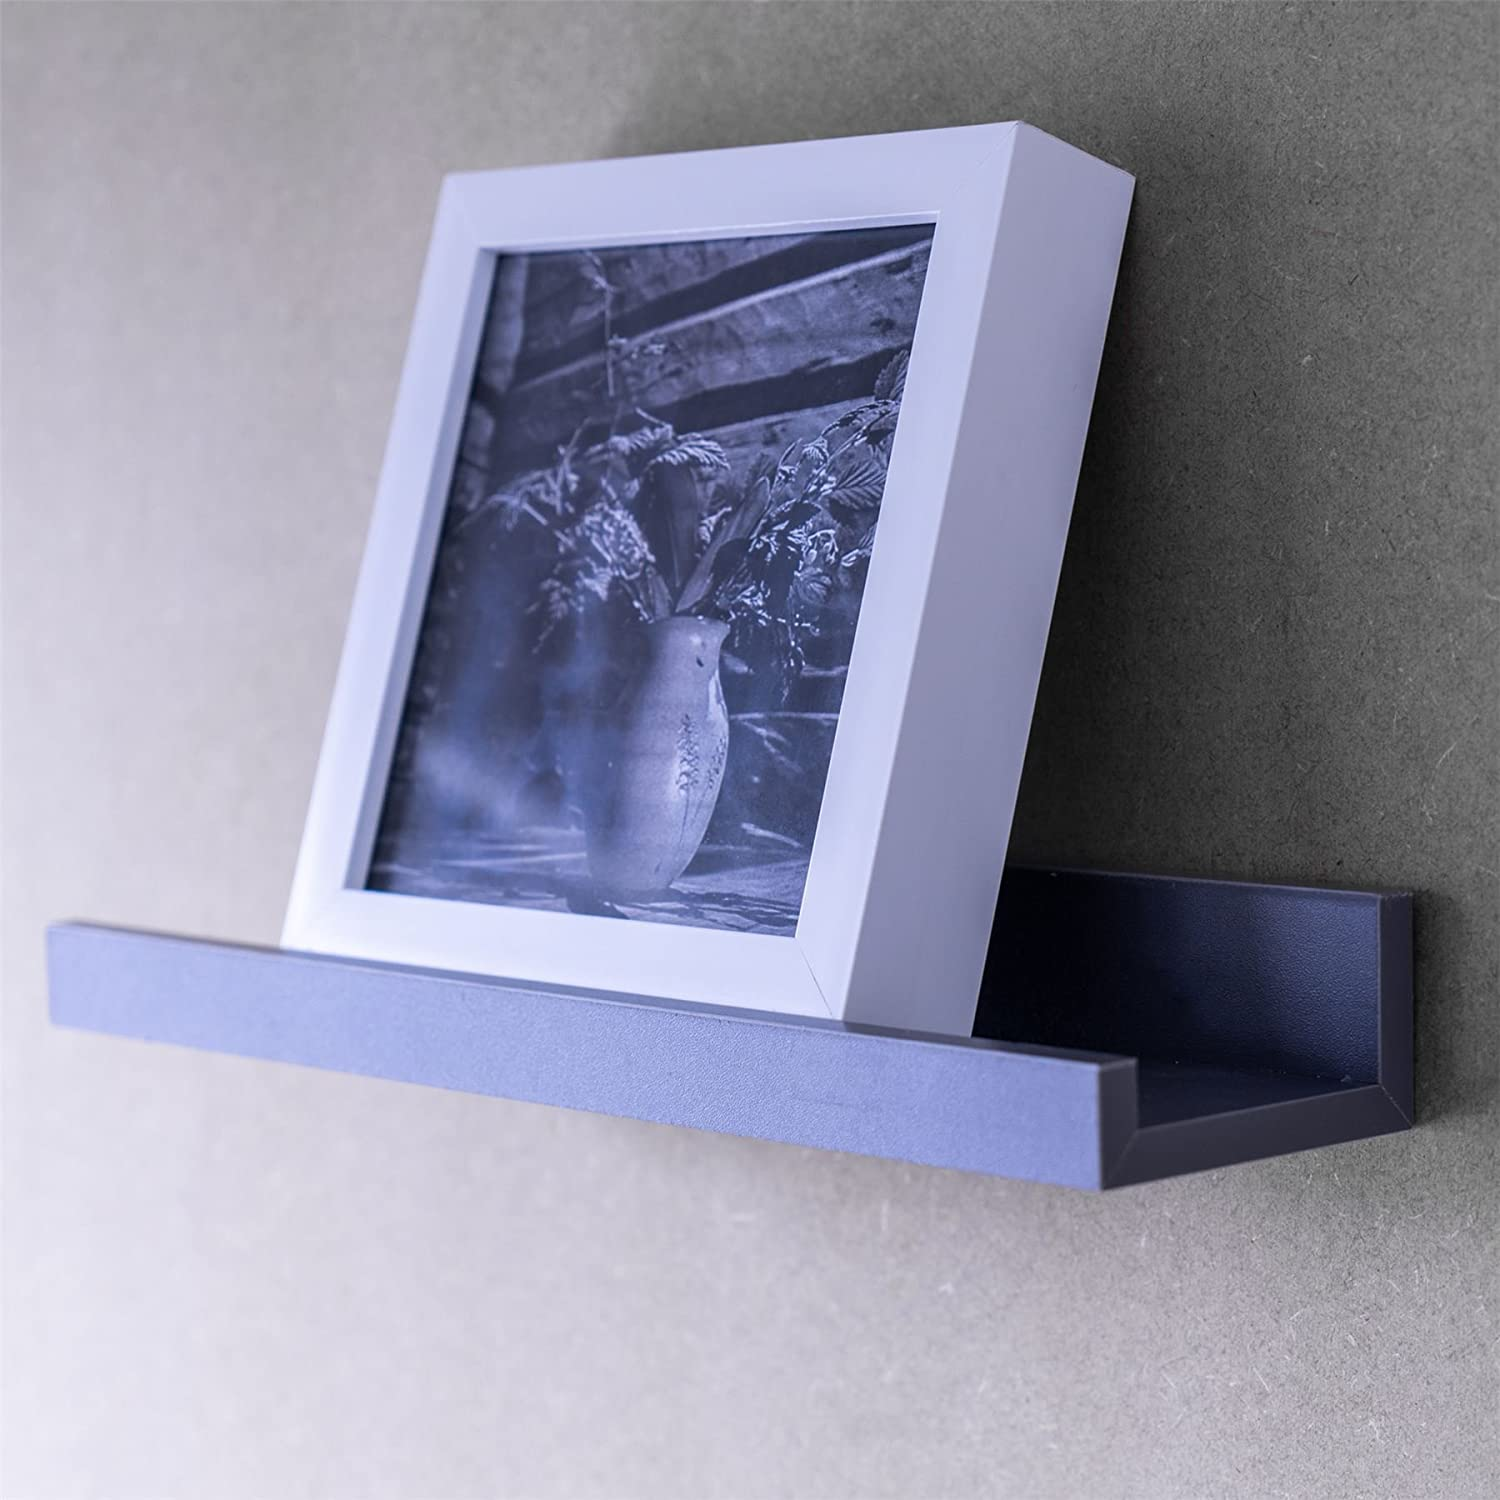 Grey Pack of 3 Harbour Housewares 32.5cm Floating Wooden Picture Ledge Wall Shelves